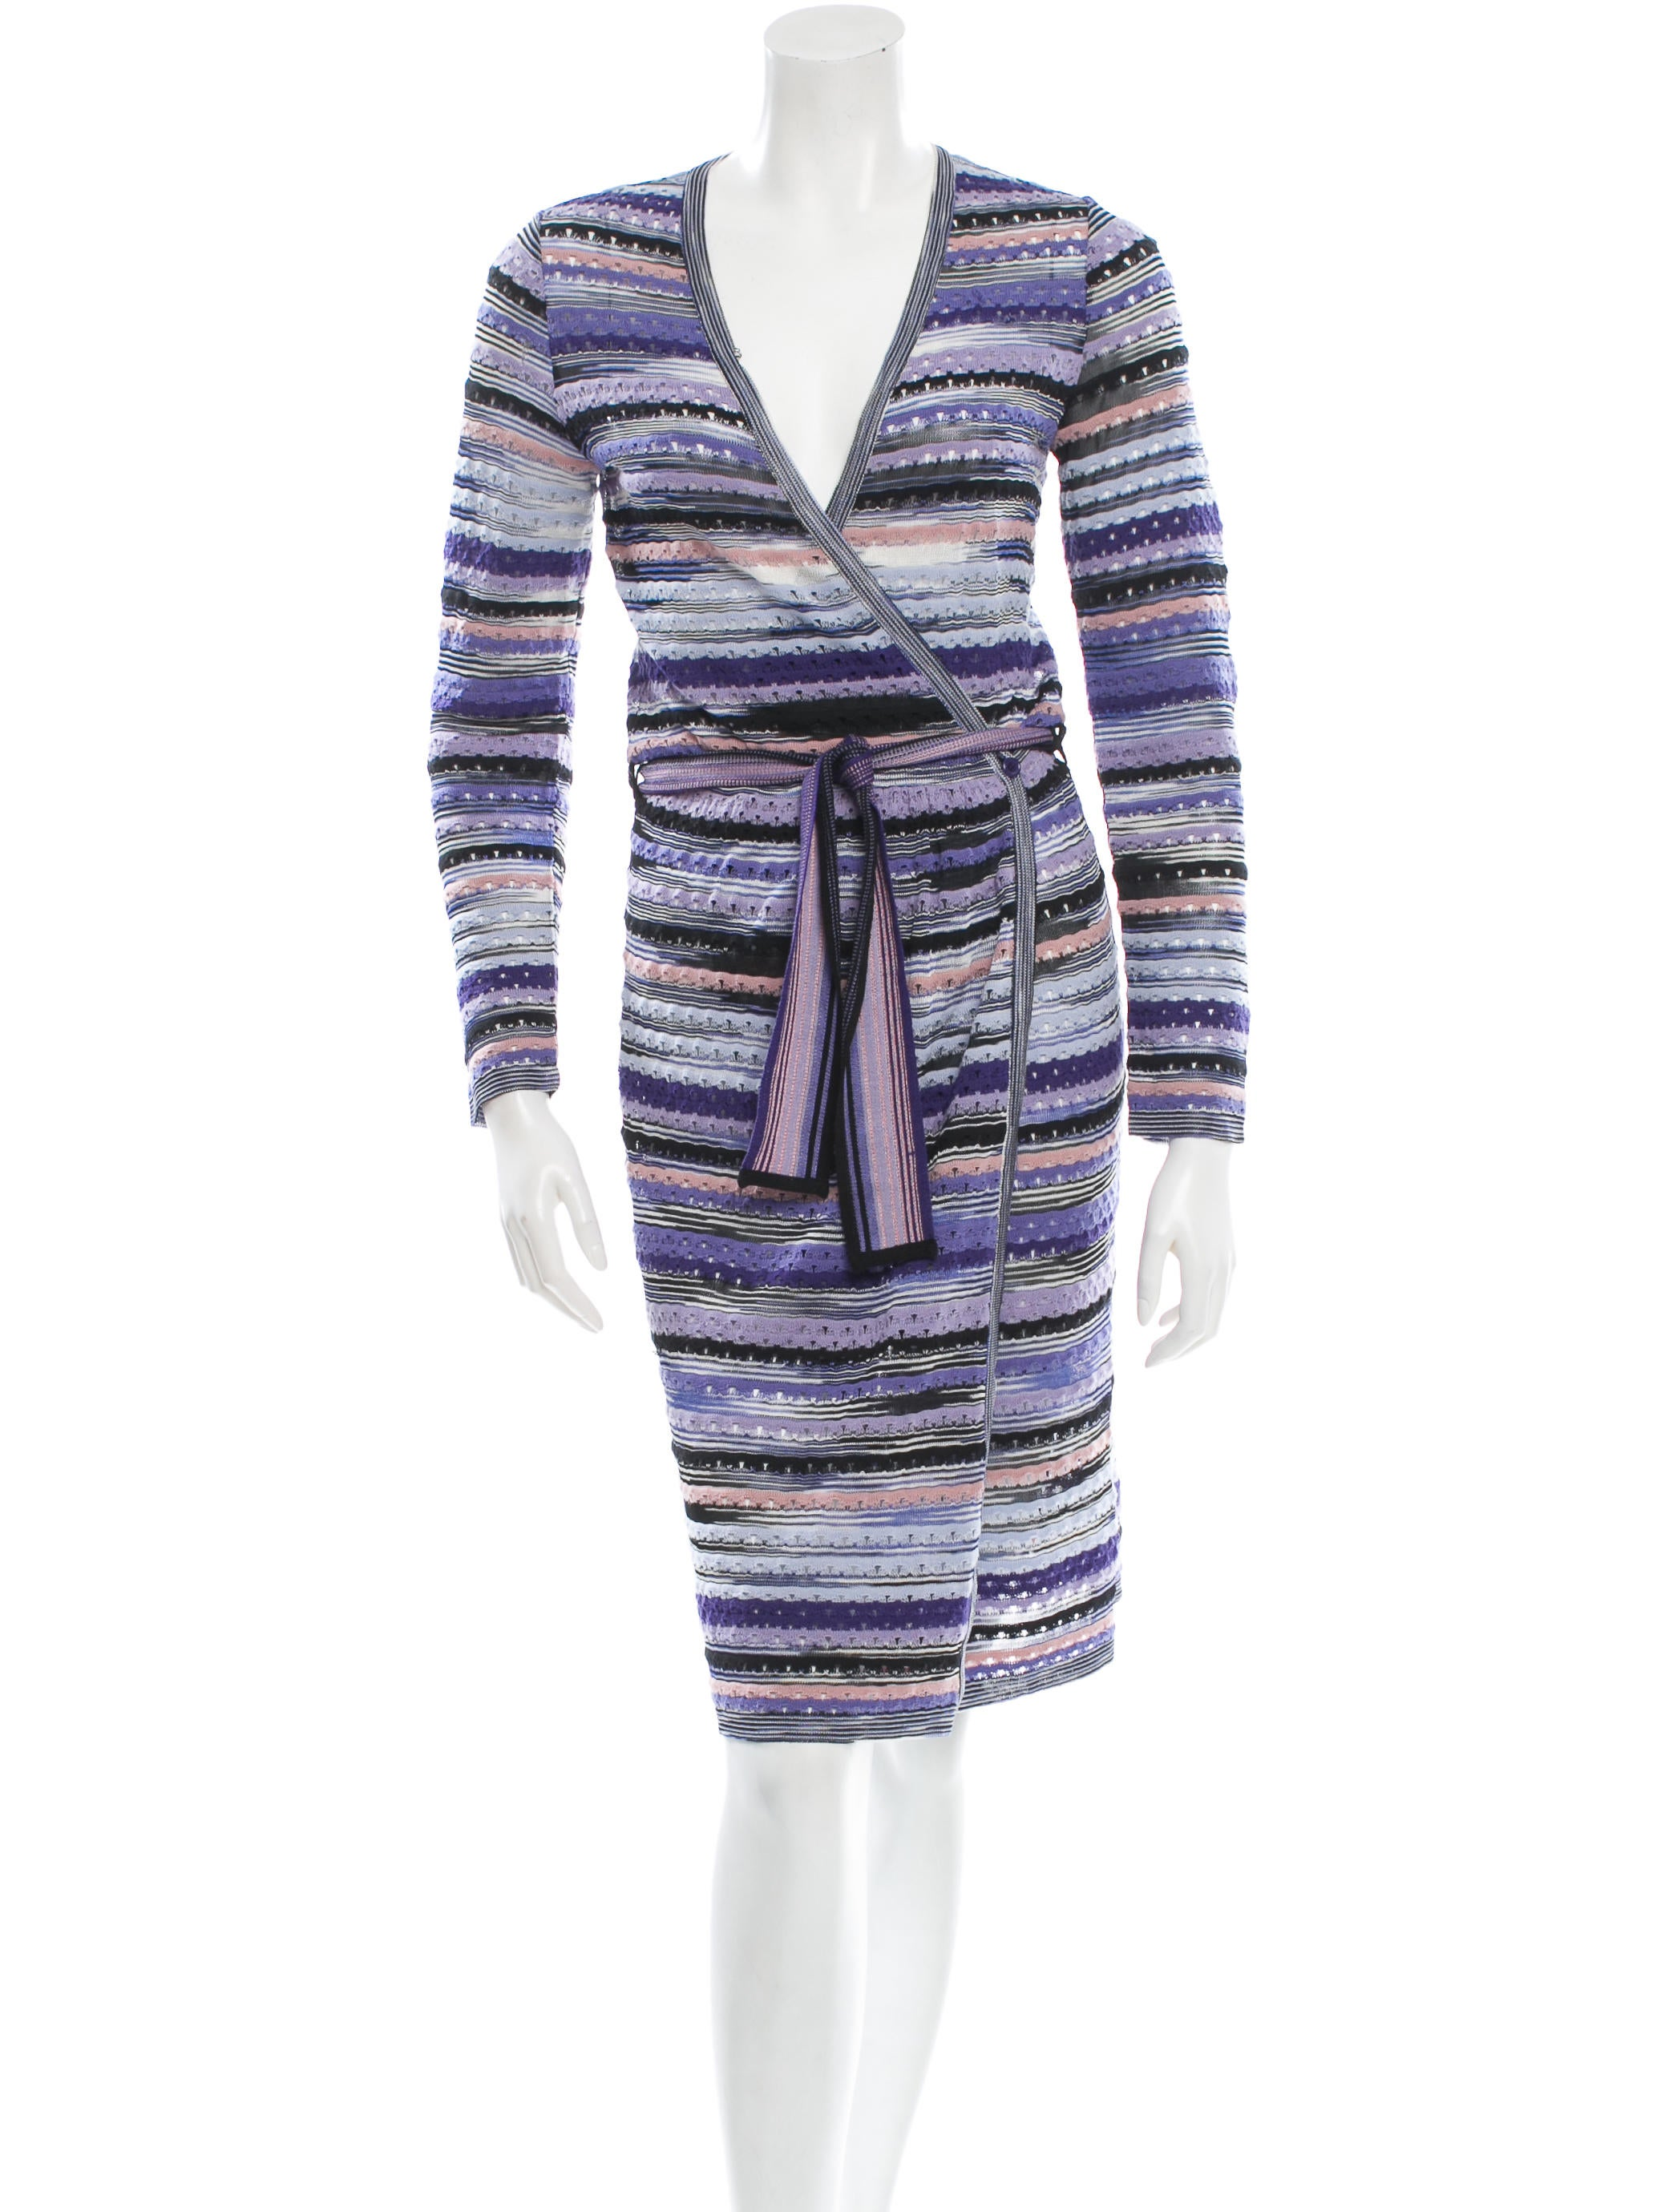 Missoni Knit Wrap Dress - Clothing - MIS30183 The RealReal